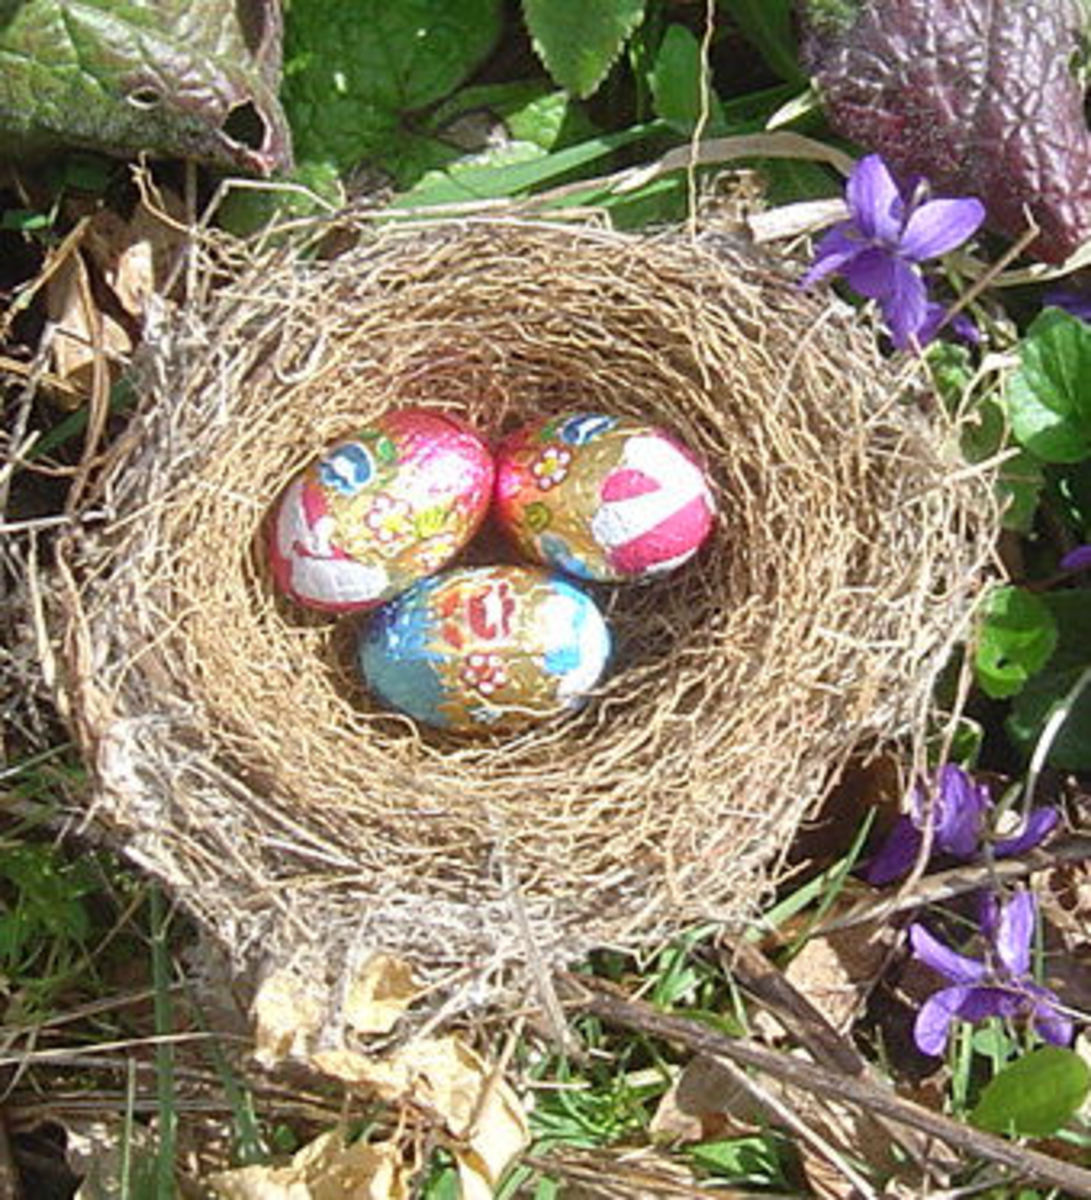 Easter Eggs in a bird's nest - you can buy this image on my Easter Cards